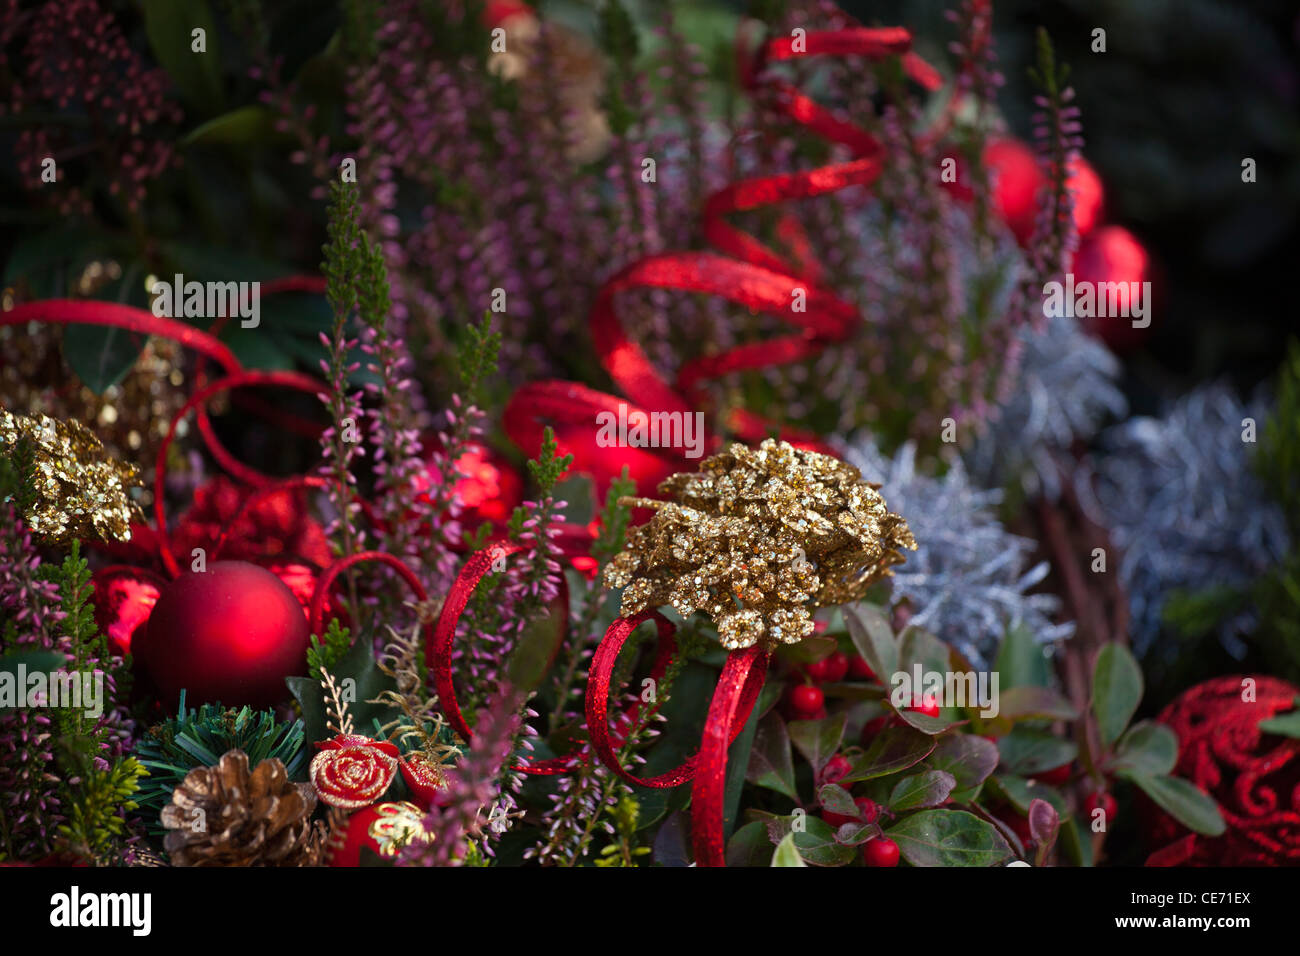 England, Greater Manchester, Manchester. Christmas decorations on sale at a stall on the Town Hall Christmas Market. - Stock Image